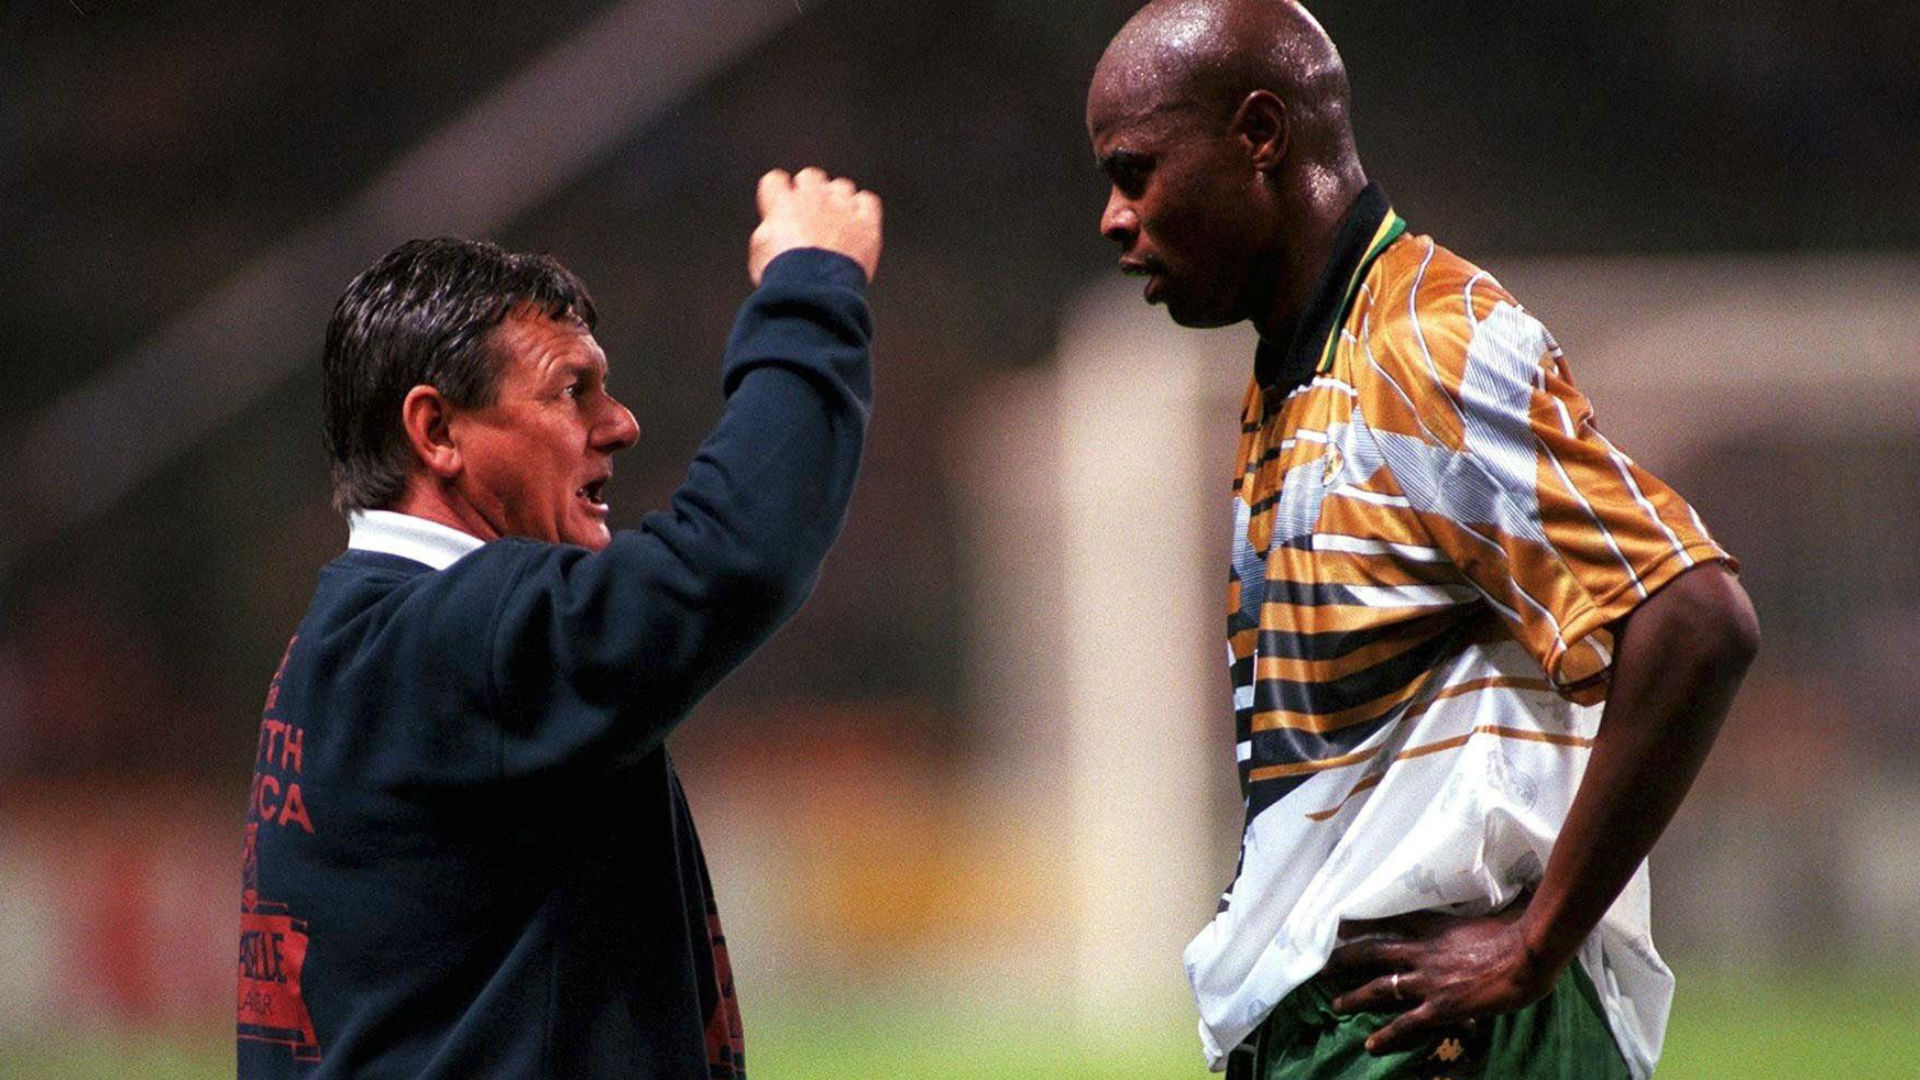 Former Leeds striker Phil Masinga has died aged 49